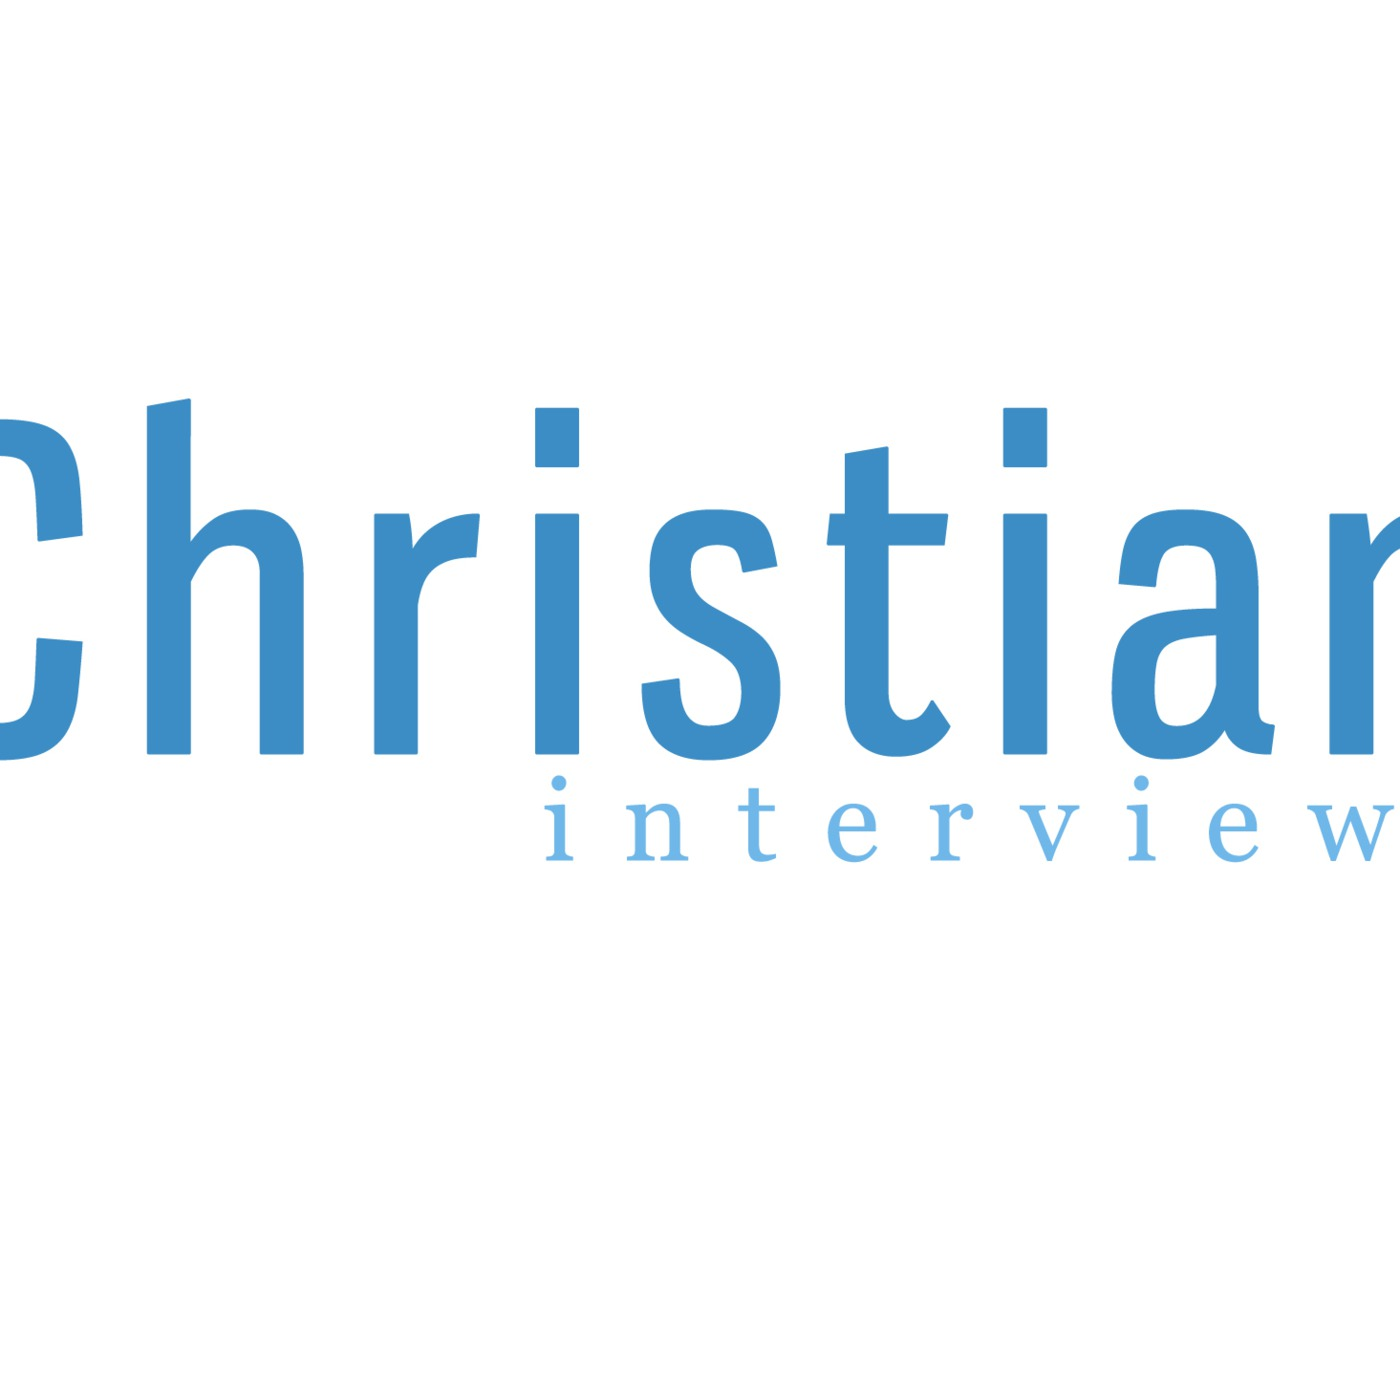 Christian Interviews - Podcast